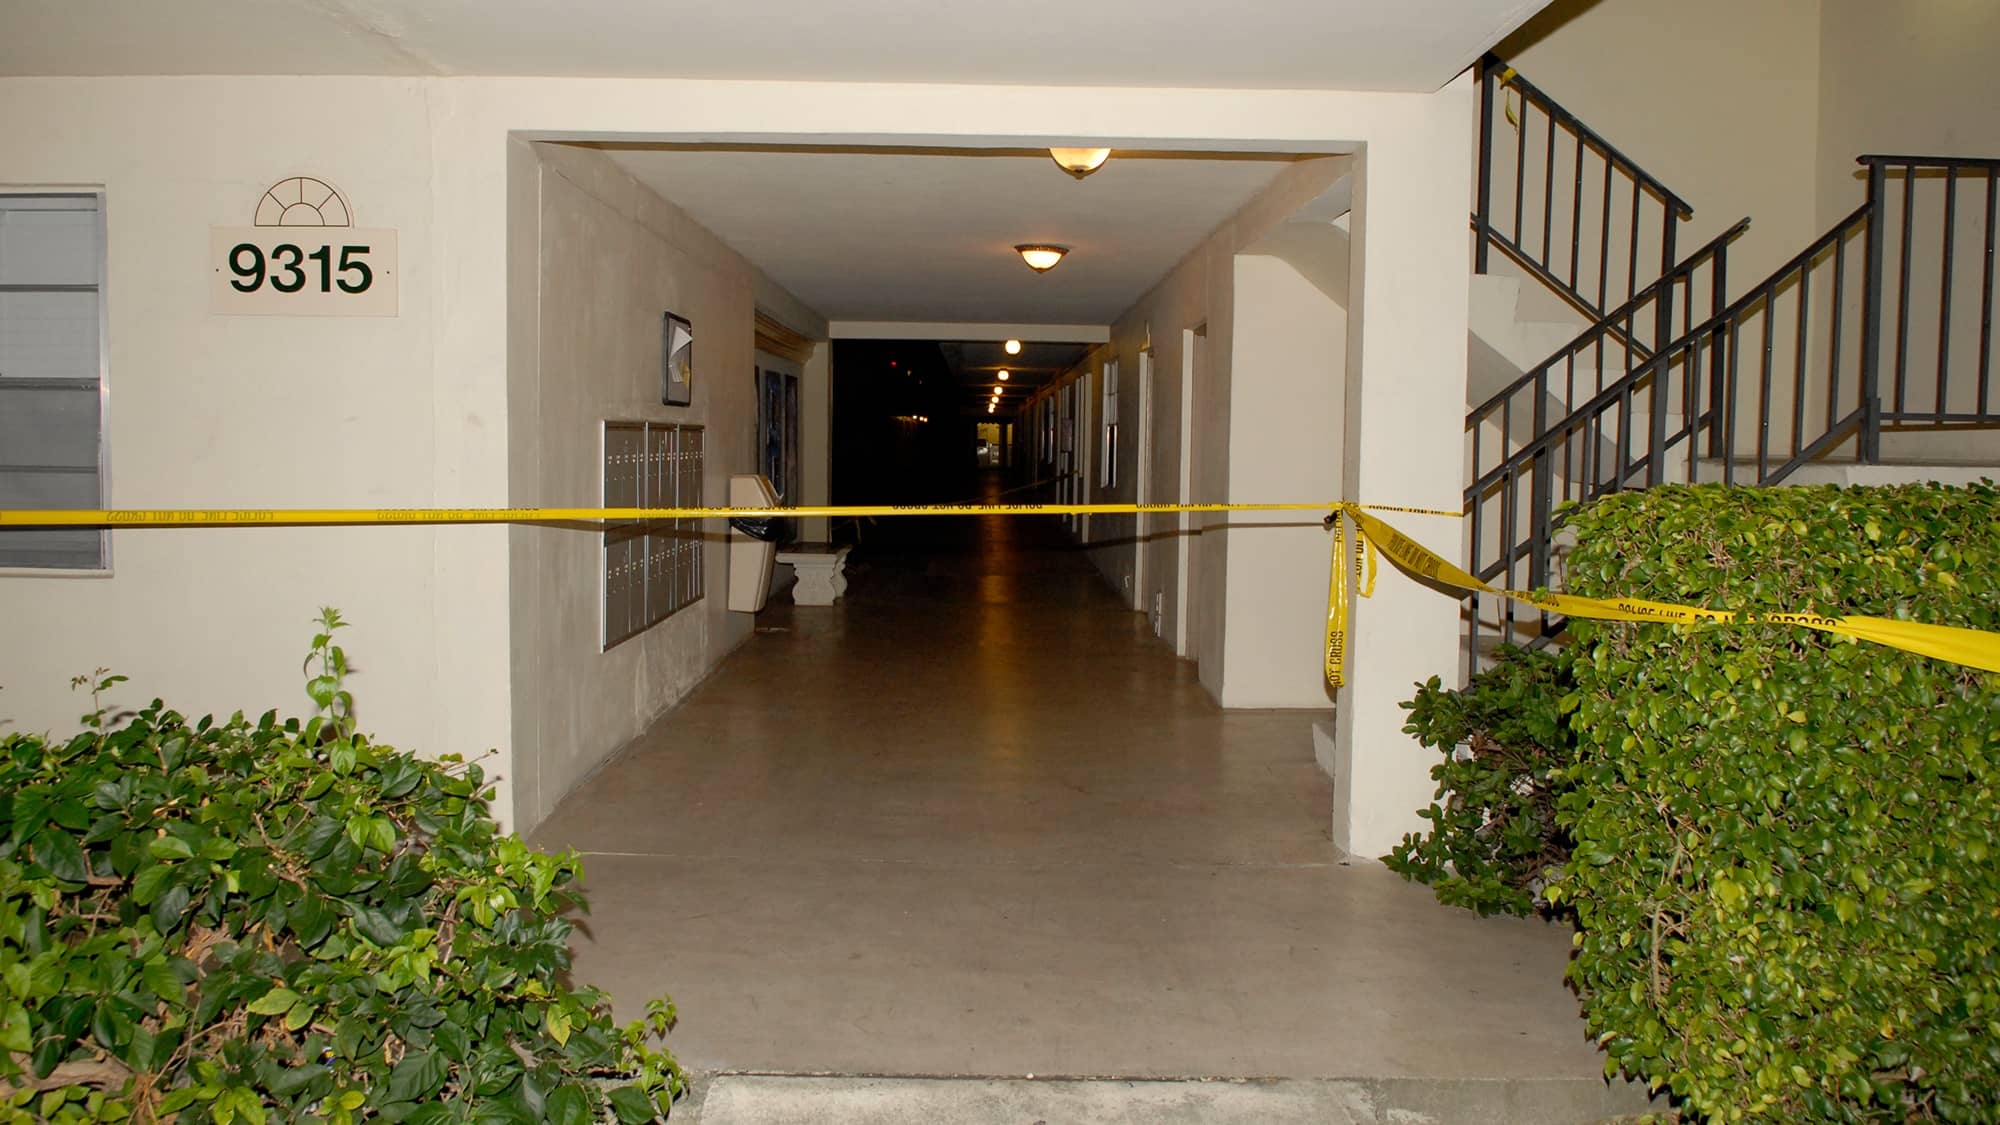 Bryan Pata's apartment building with crime scene tape